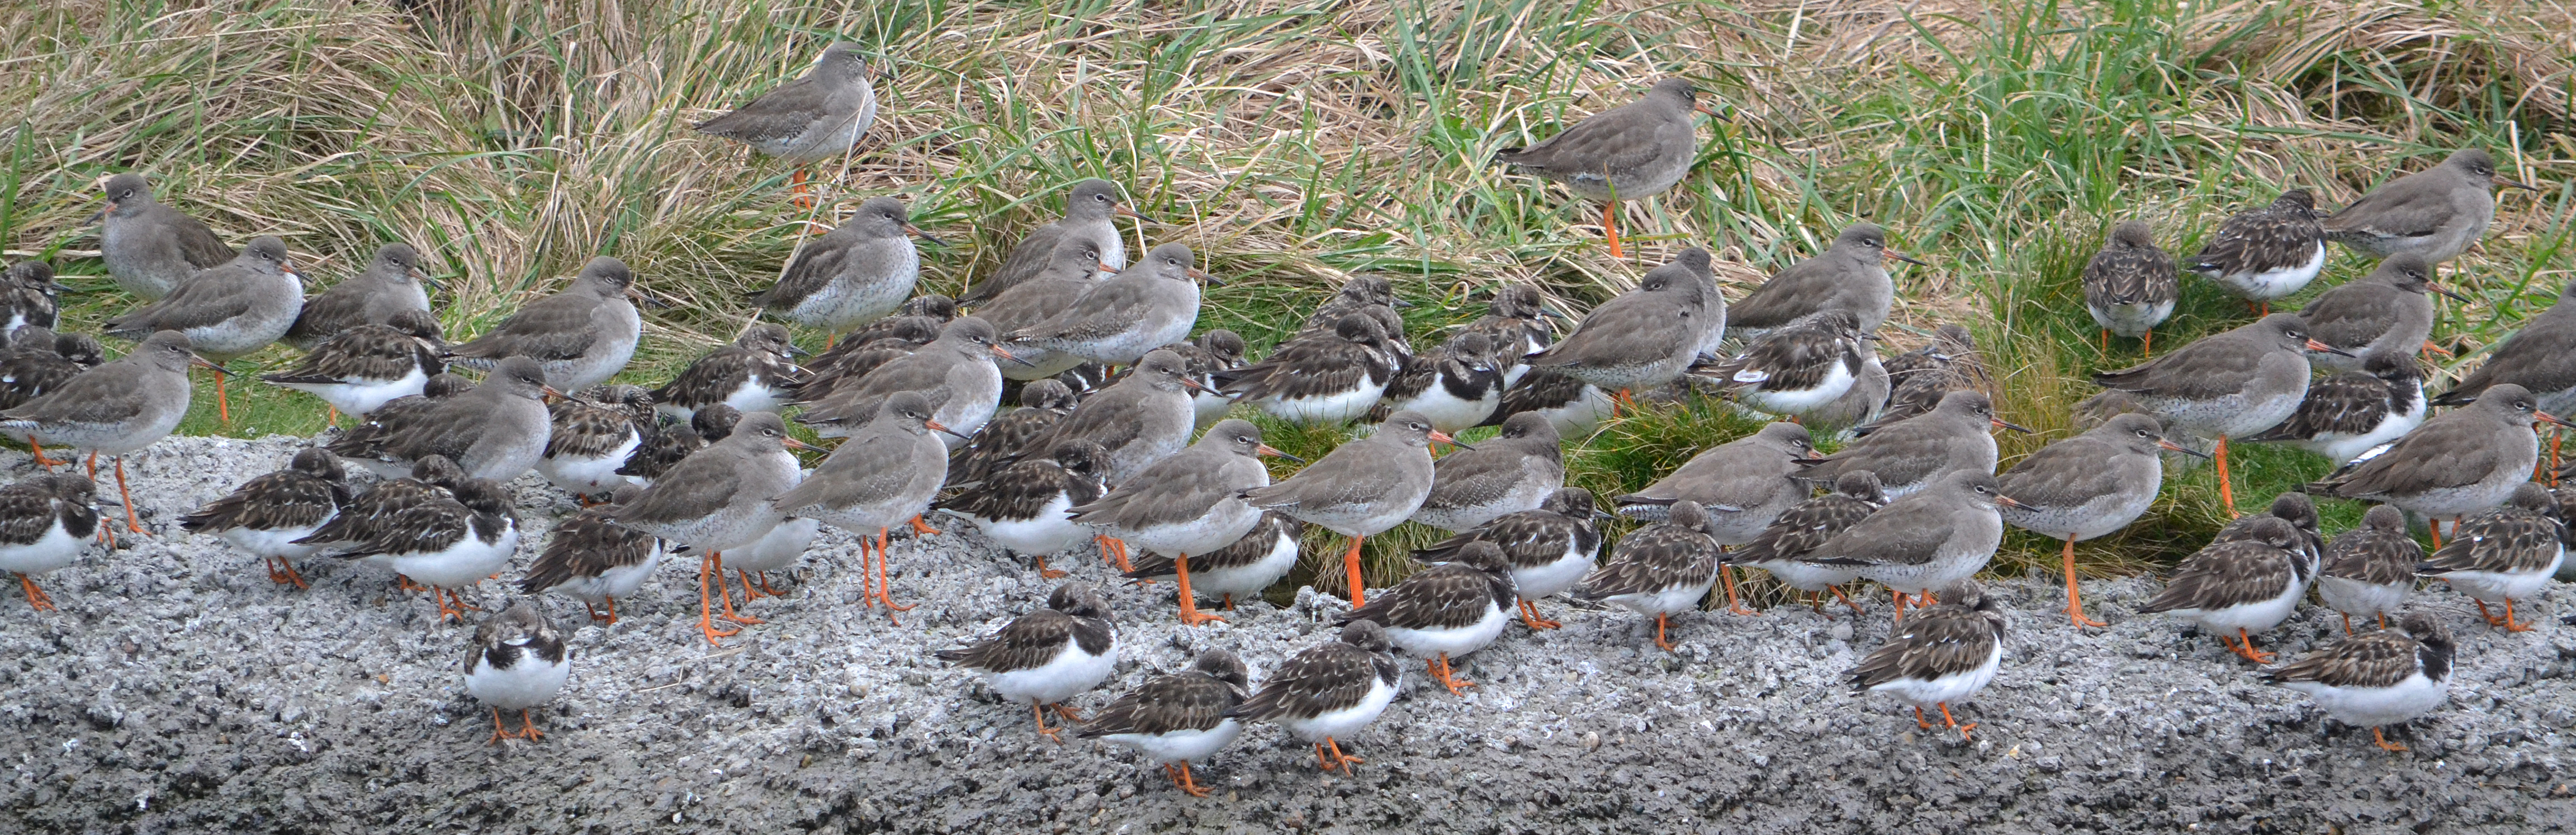 Redshank and Turnstone roosting